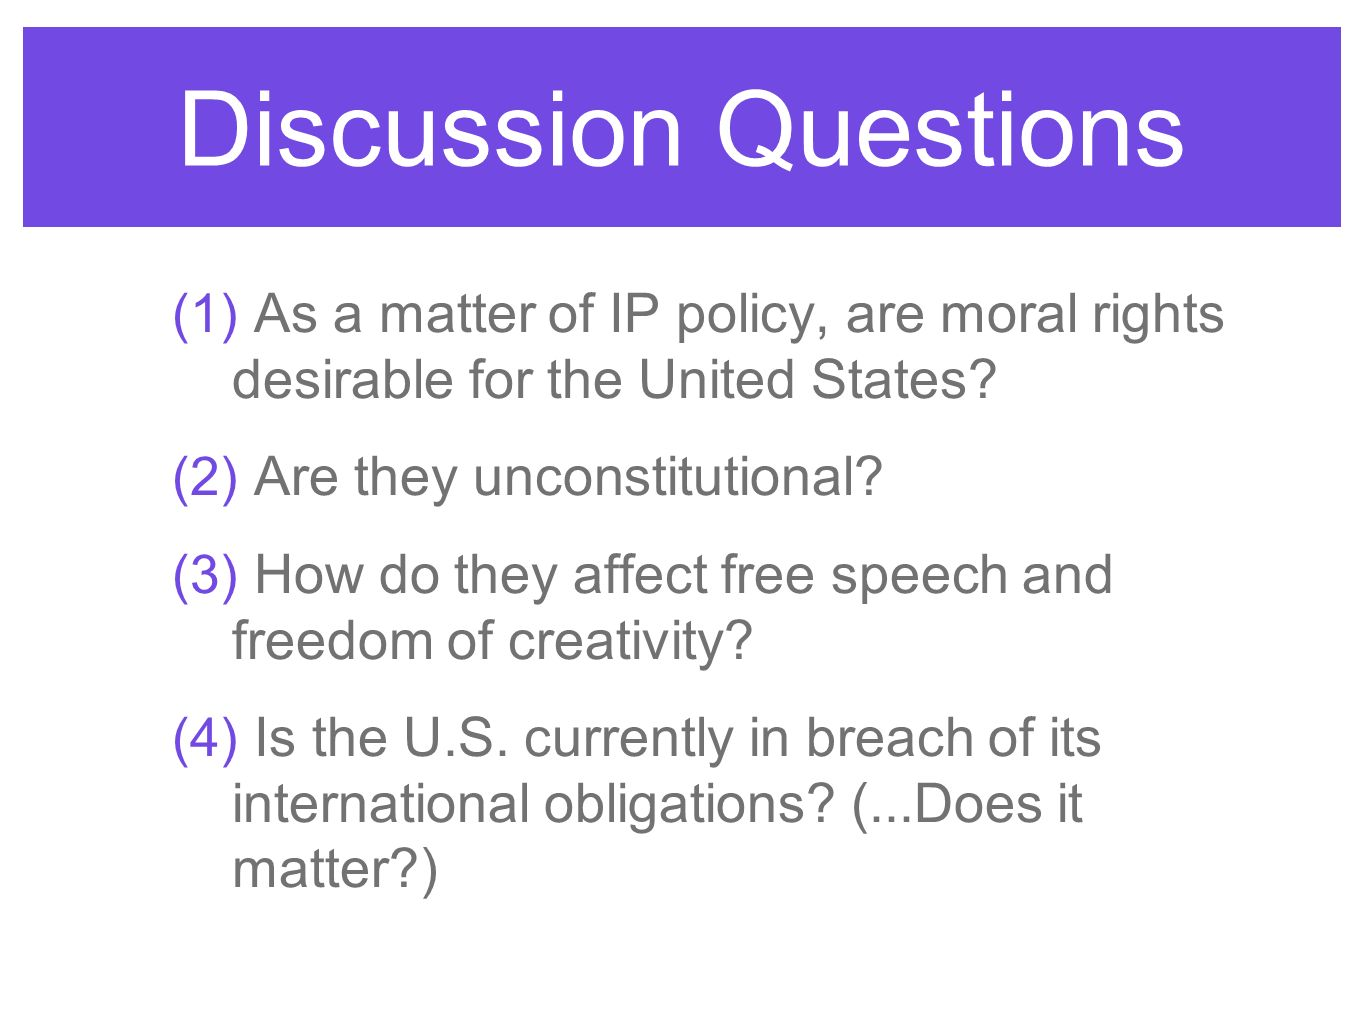 Discussion Questions As a matter of IP policy, are moral rights desirable for the United States Are they unconstitutional